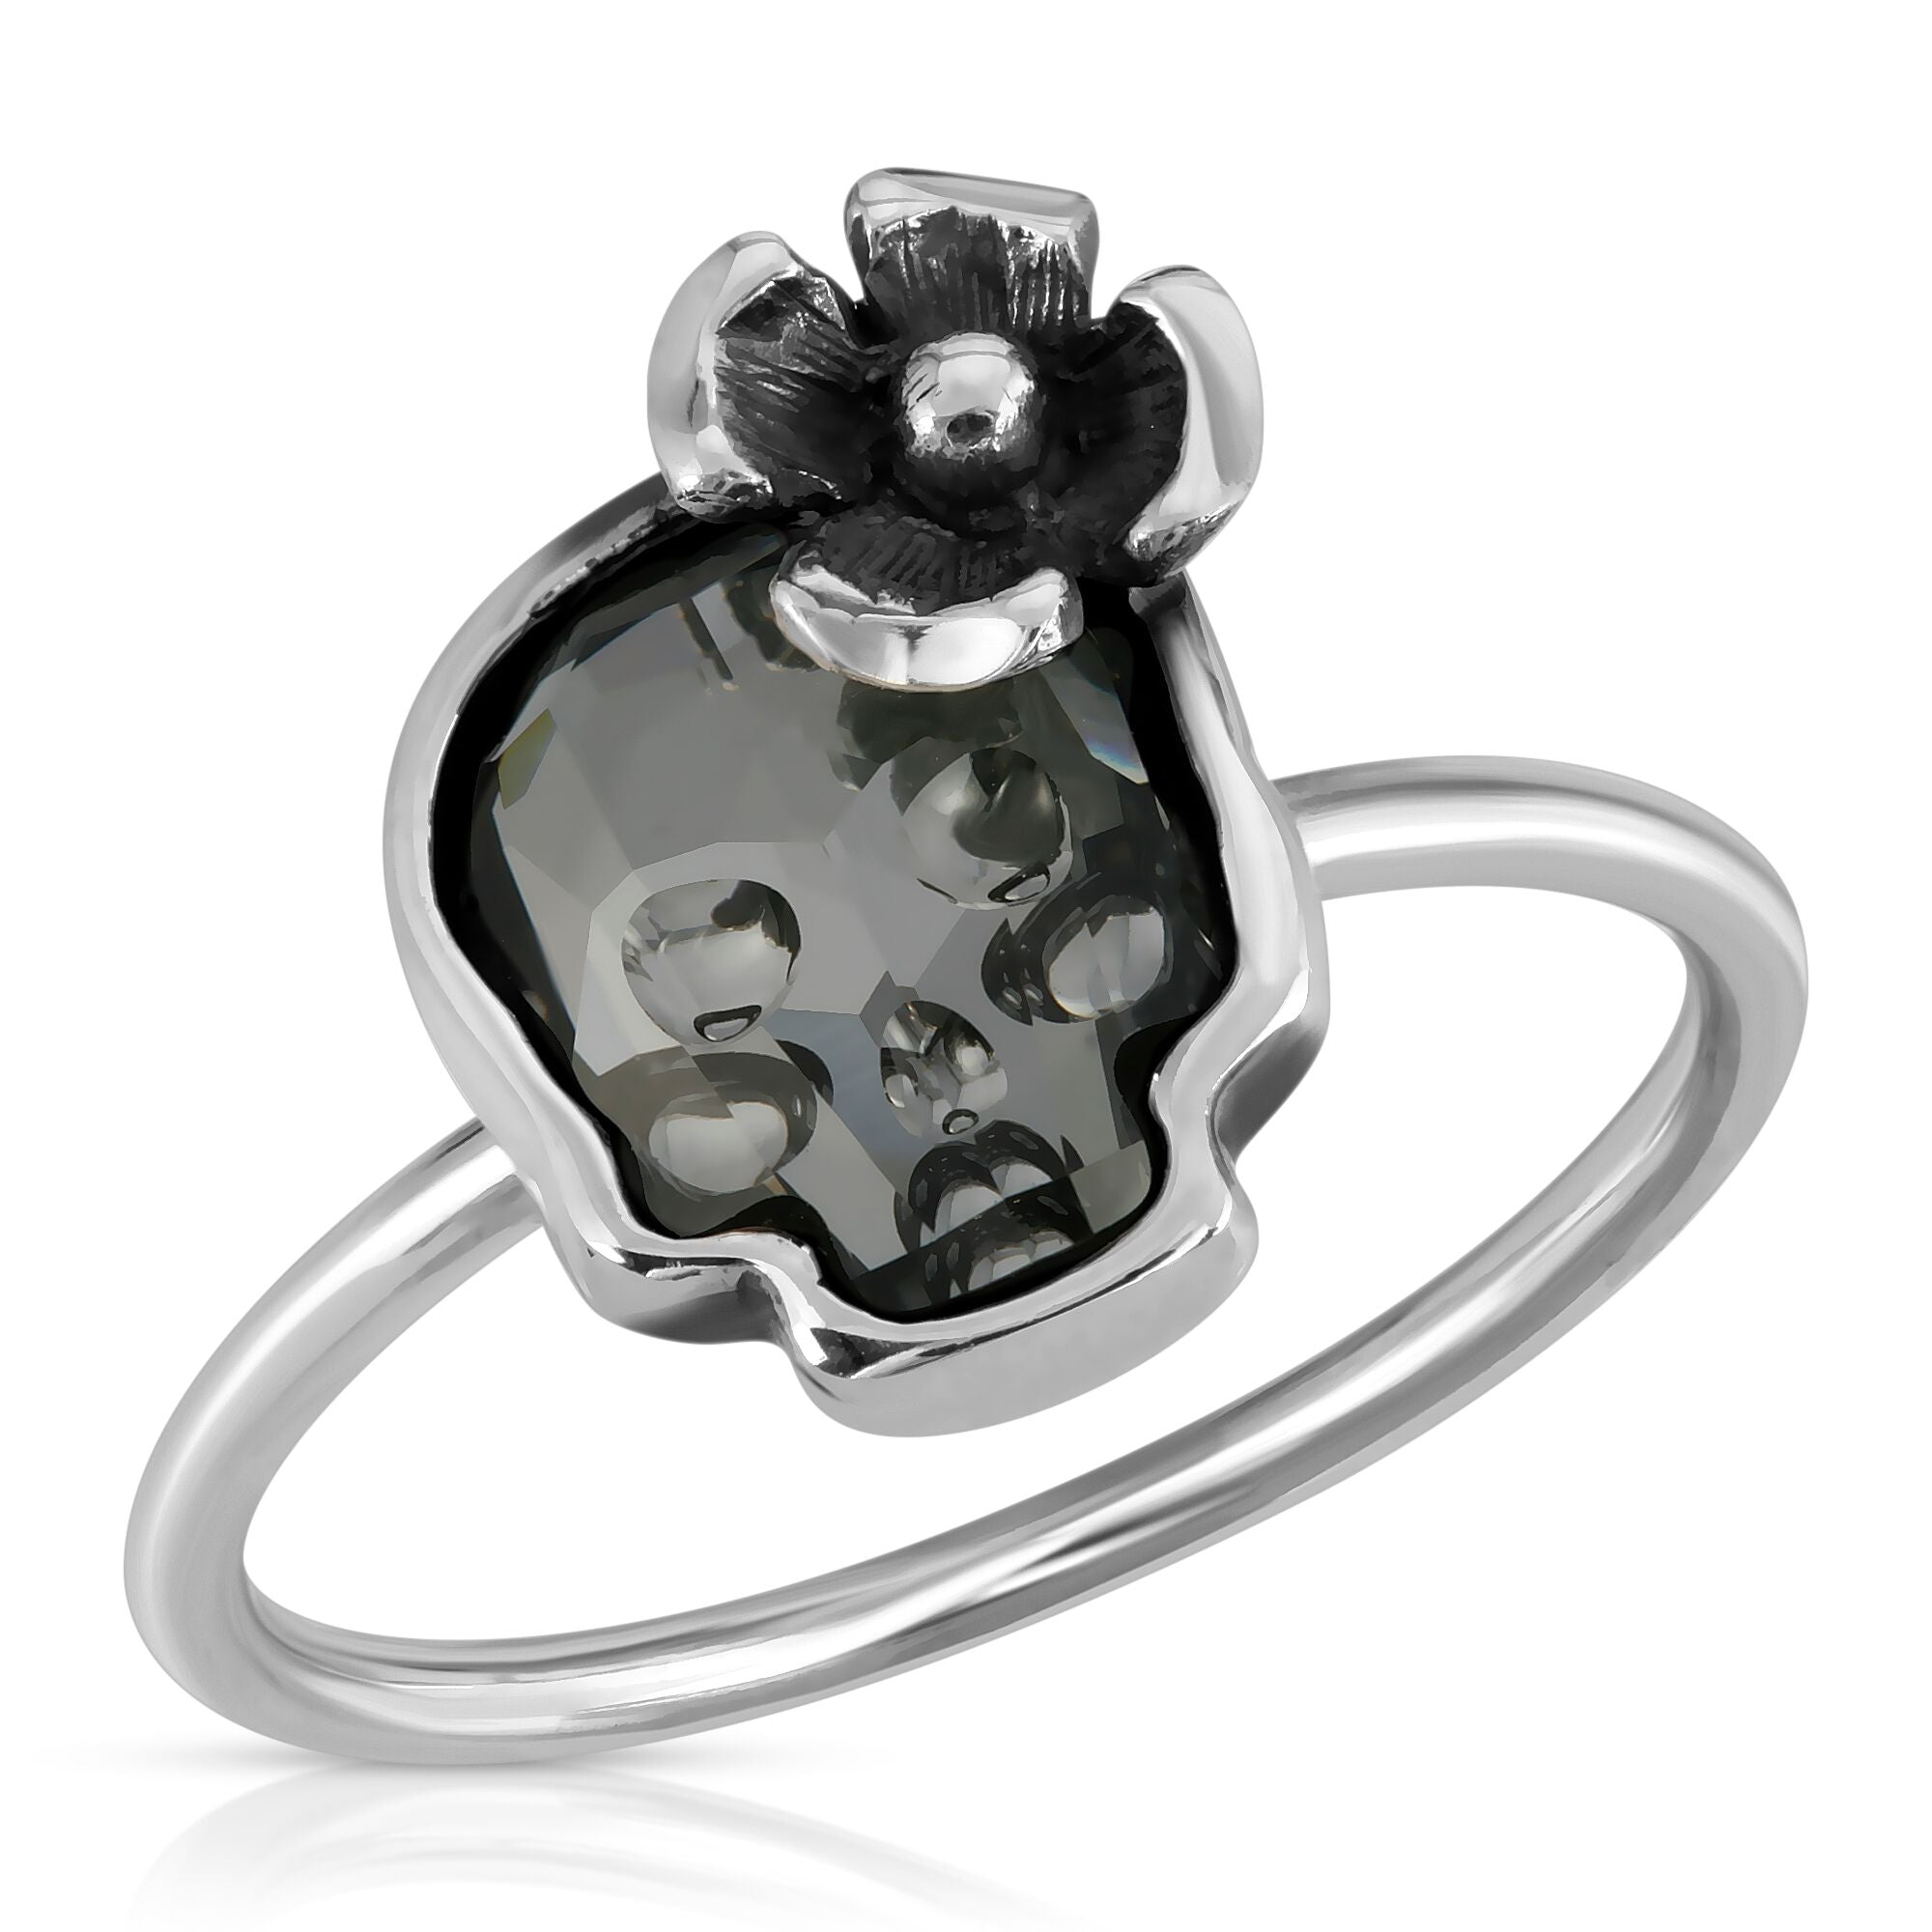 The W Brothers Swarovski Skull Crystal Ring crafted from premium Grade A 925 Sterling Silver. Perfect for men and women female fashion accessory ring. Designed for halloween skull jewelry.